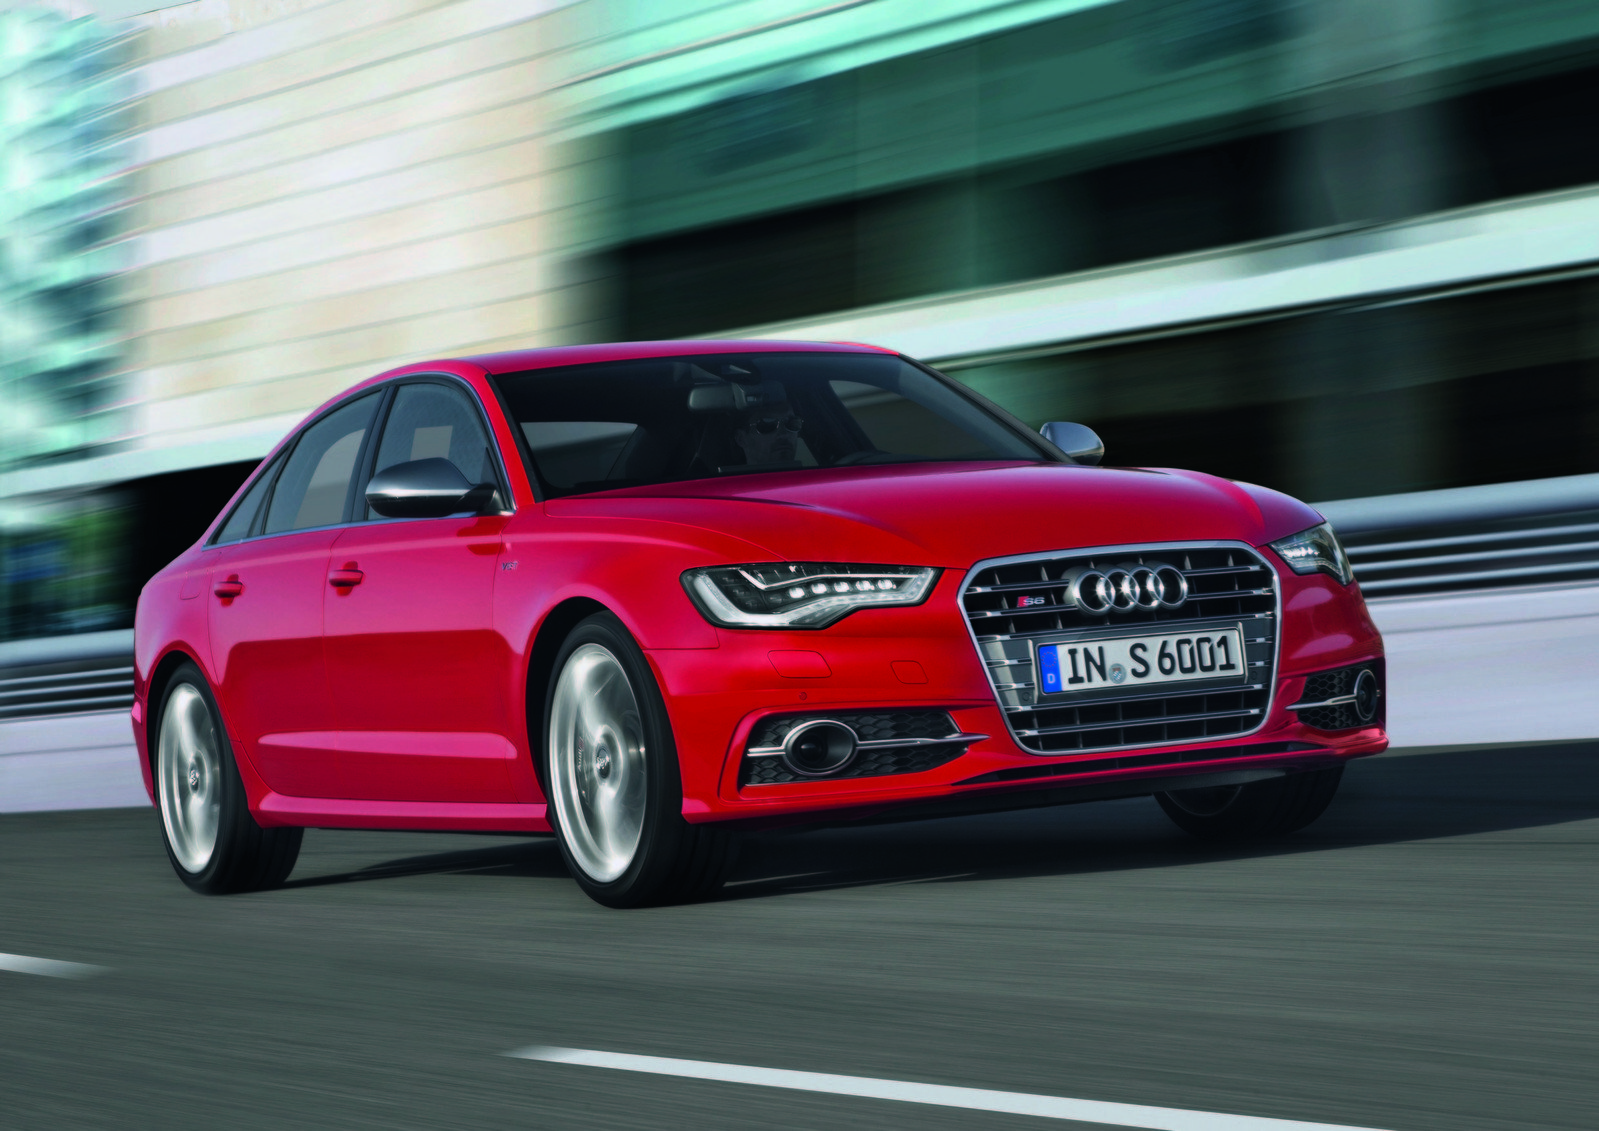 2014 Audi S6 Review - Top Speed